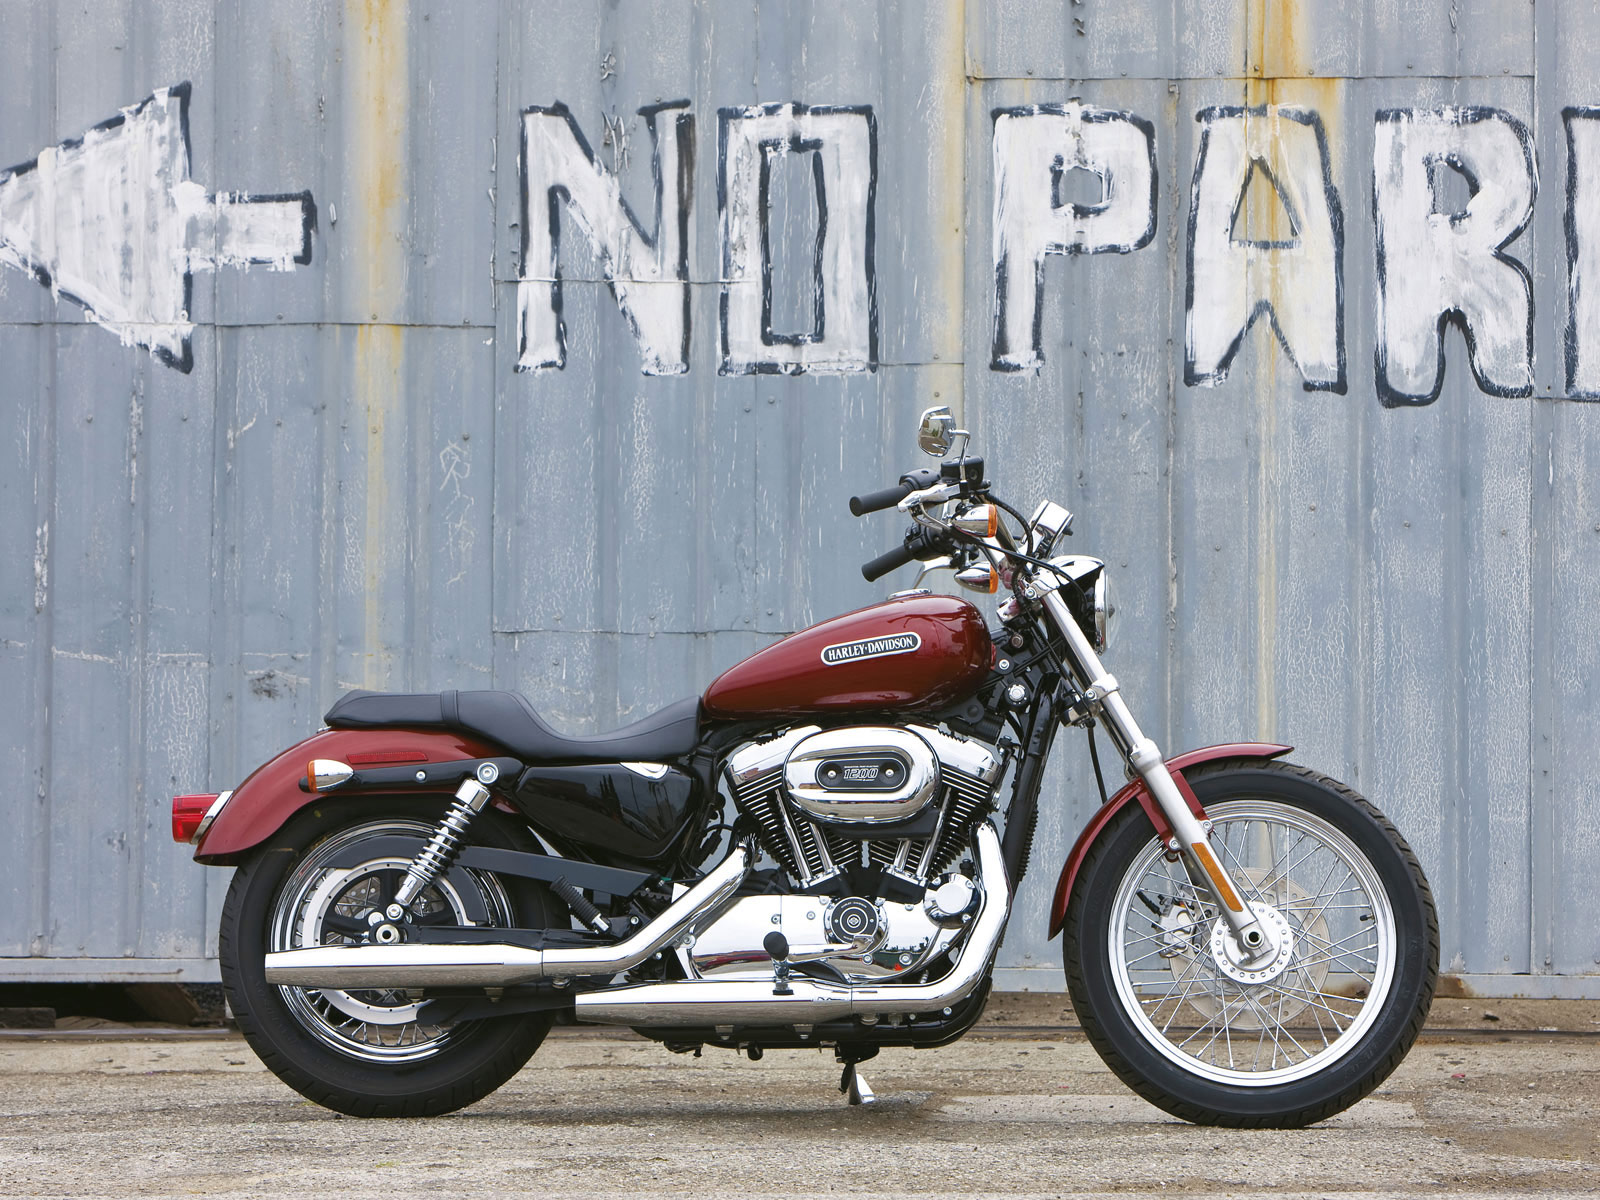 harley davidson pictures specs insurance accident lawyers